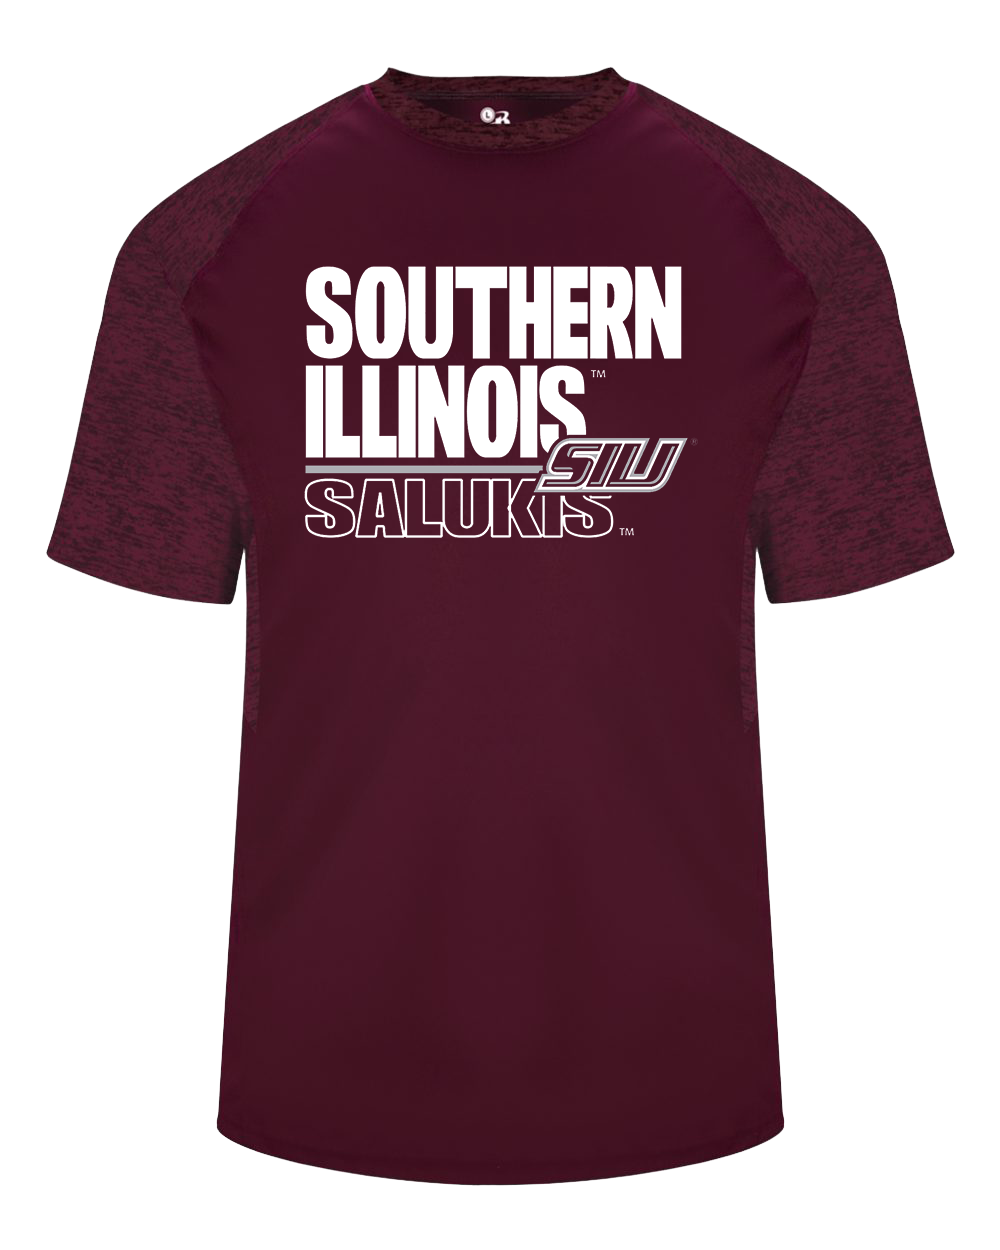 Image for the BADGER® SIU SALUKIS DRY-FIT TONAL BLEND PANEL T-SHIRT product